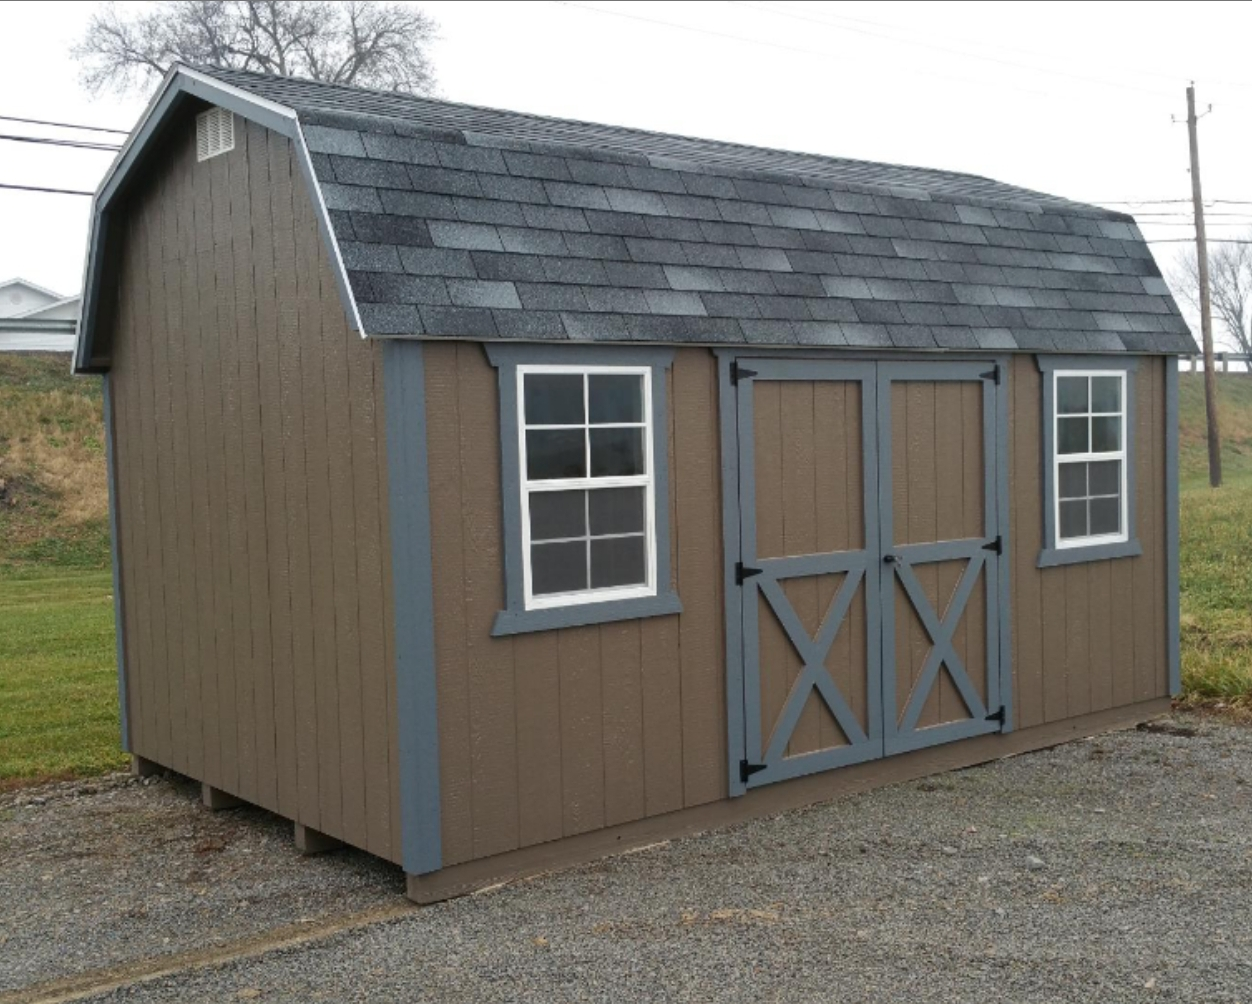 Reliable Storage Barns and Sheds that Last - Miller's Storage Barns